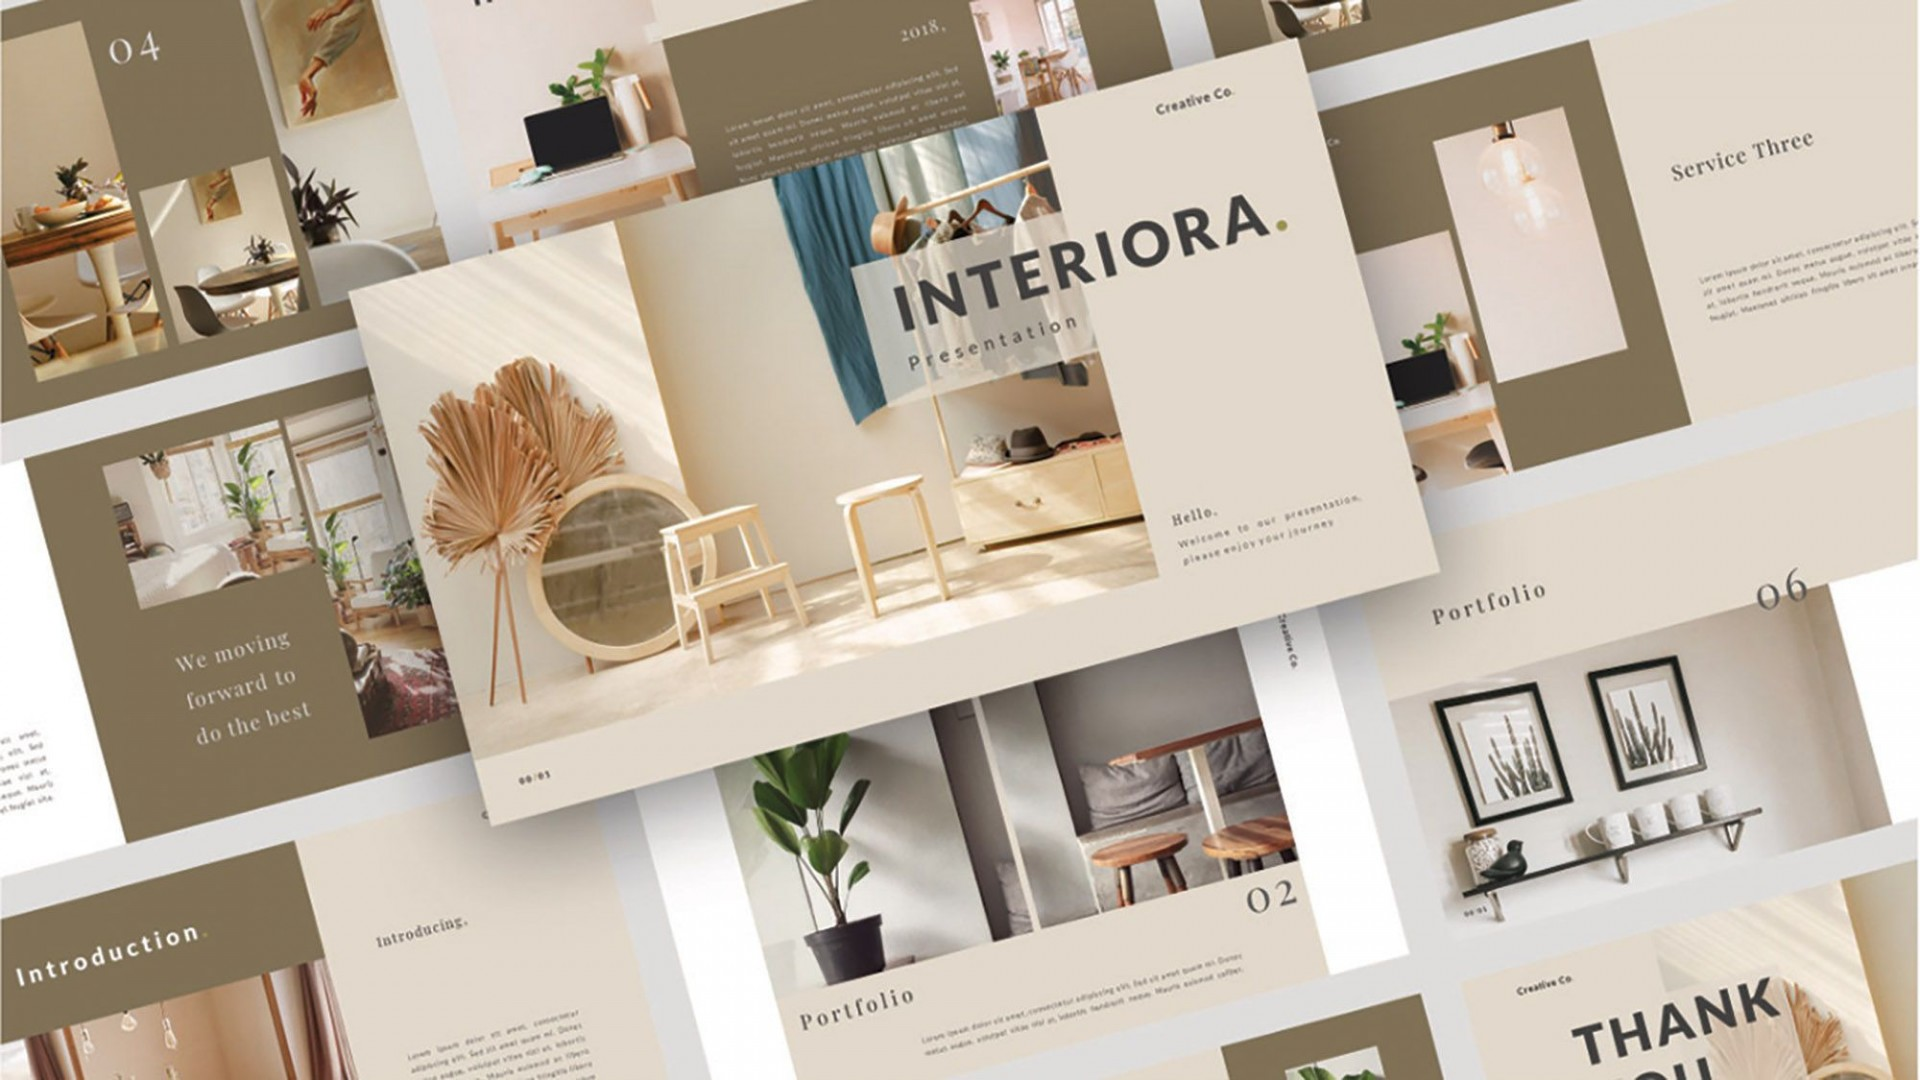 008 Phenomenal Interior Design Portfolio Template Image  Ppt Free Download Layout1920